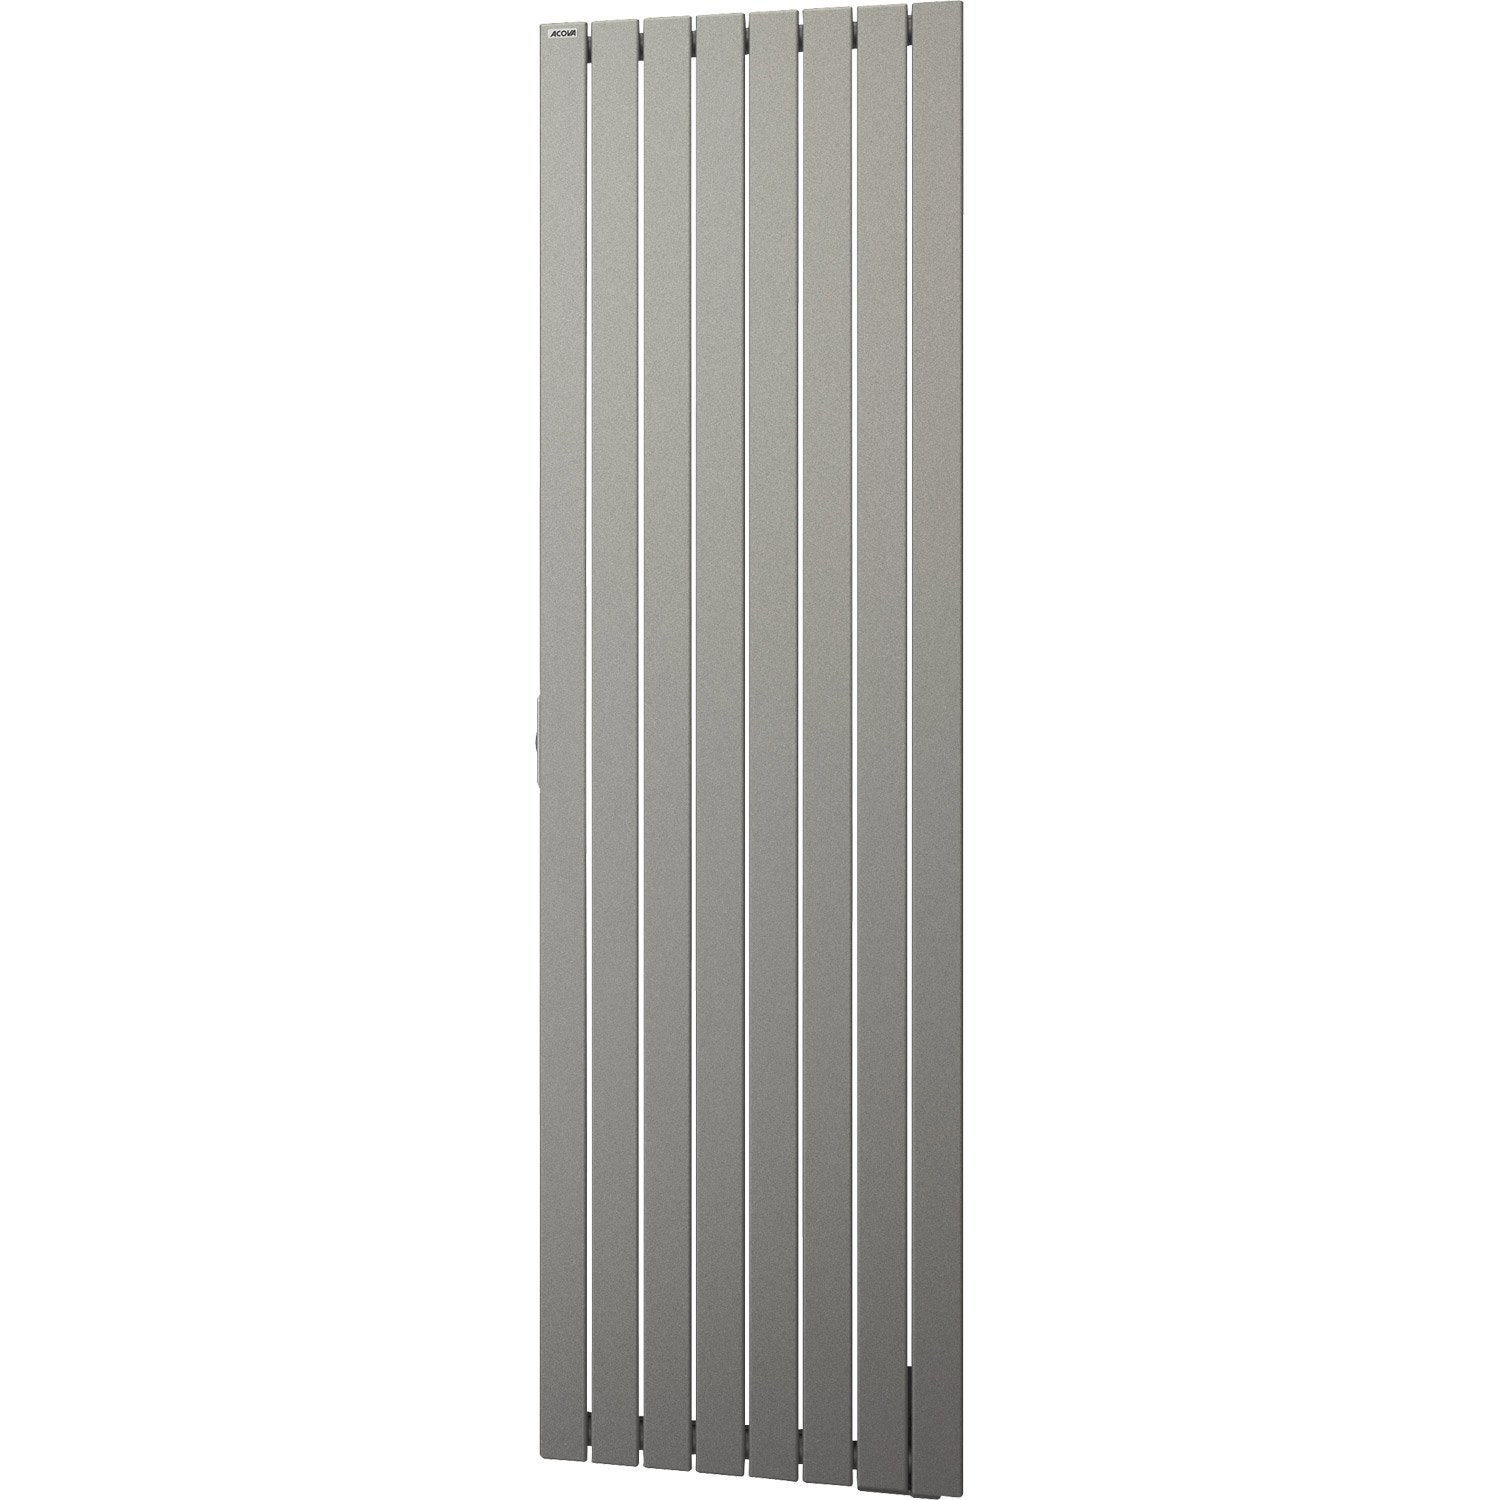 radiateur lectrique inertie fluide acova lina titane vertical 1500 w leroy merlin. Black Bedroom Furniture Sets. Home Design Ideas